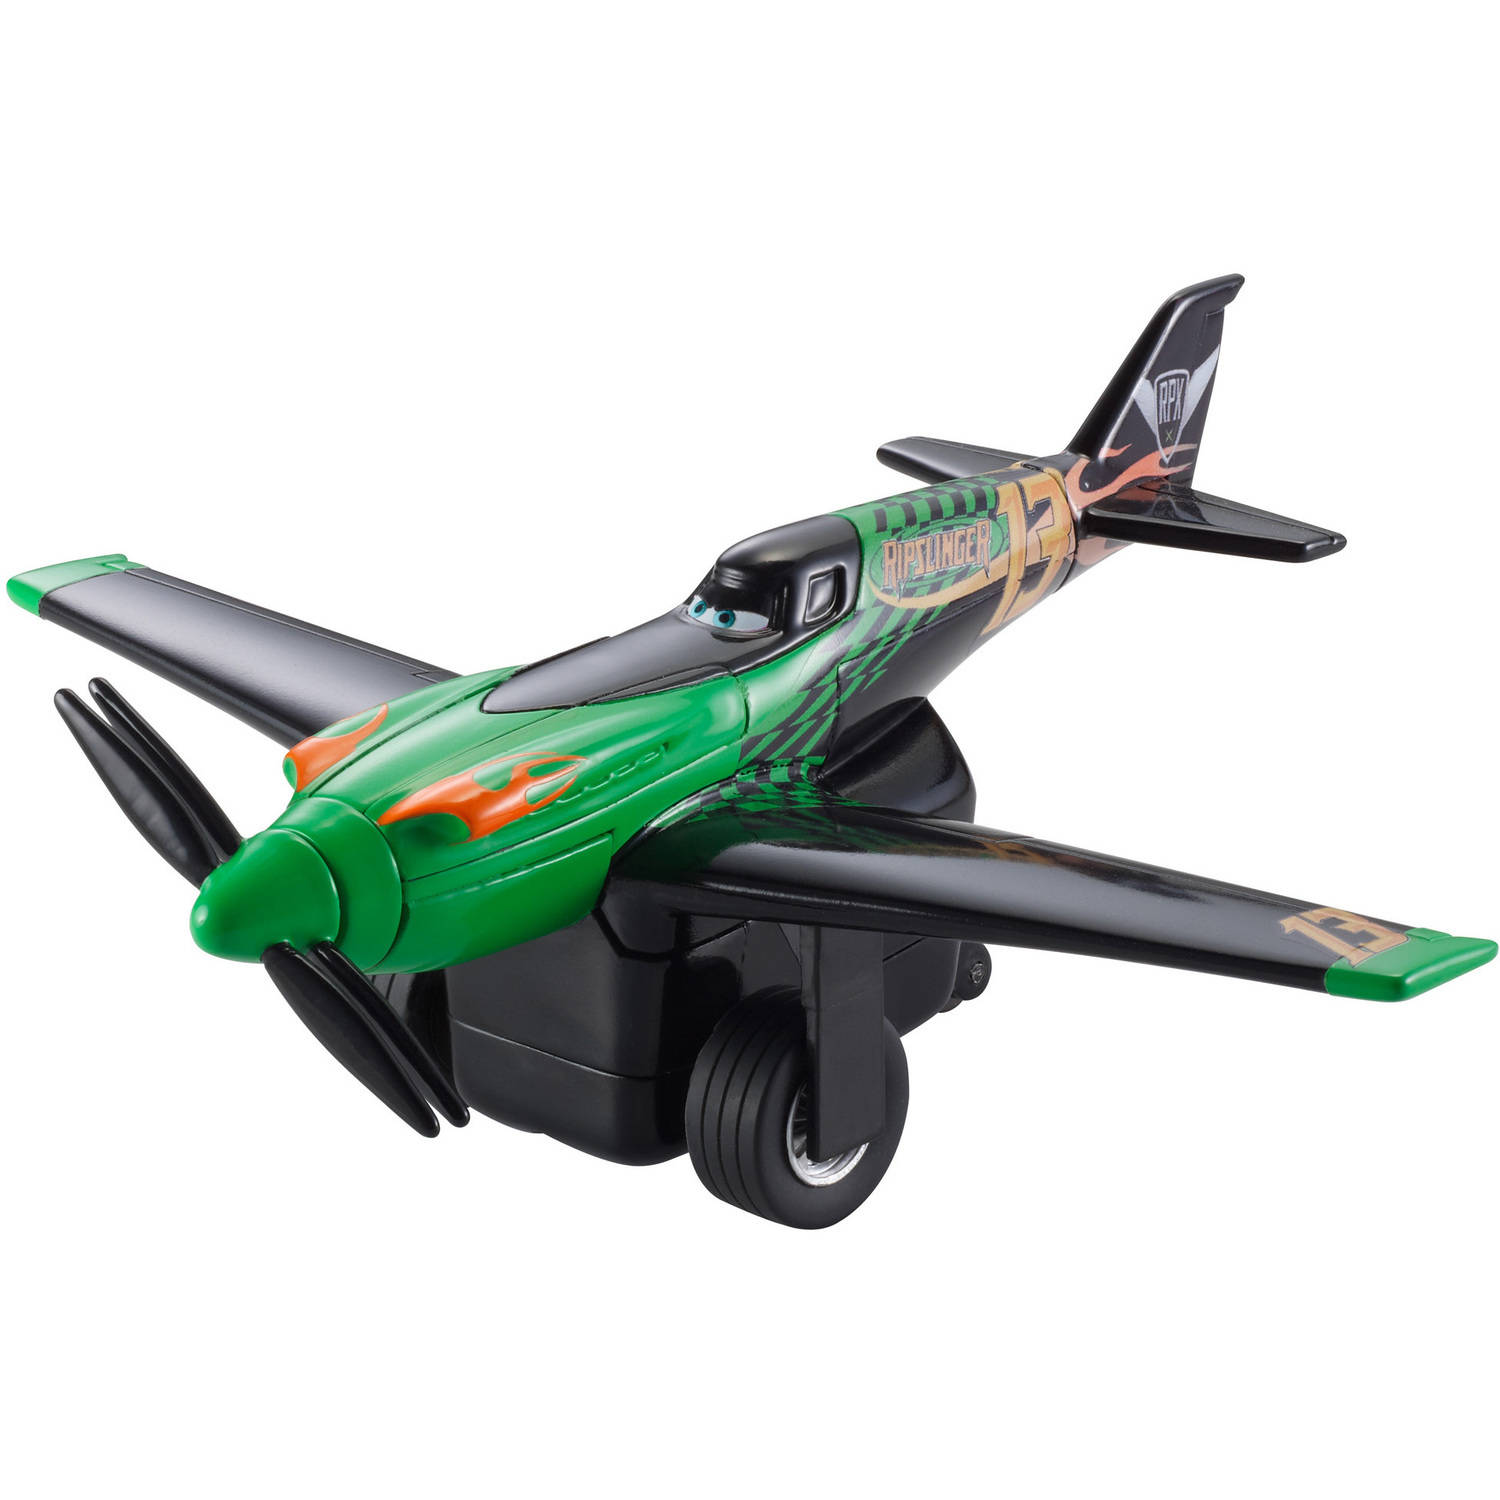 Disney Planes Vehicle, Ripslinger